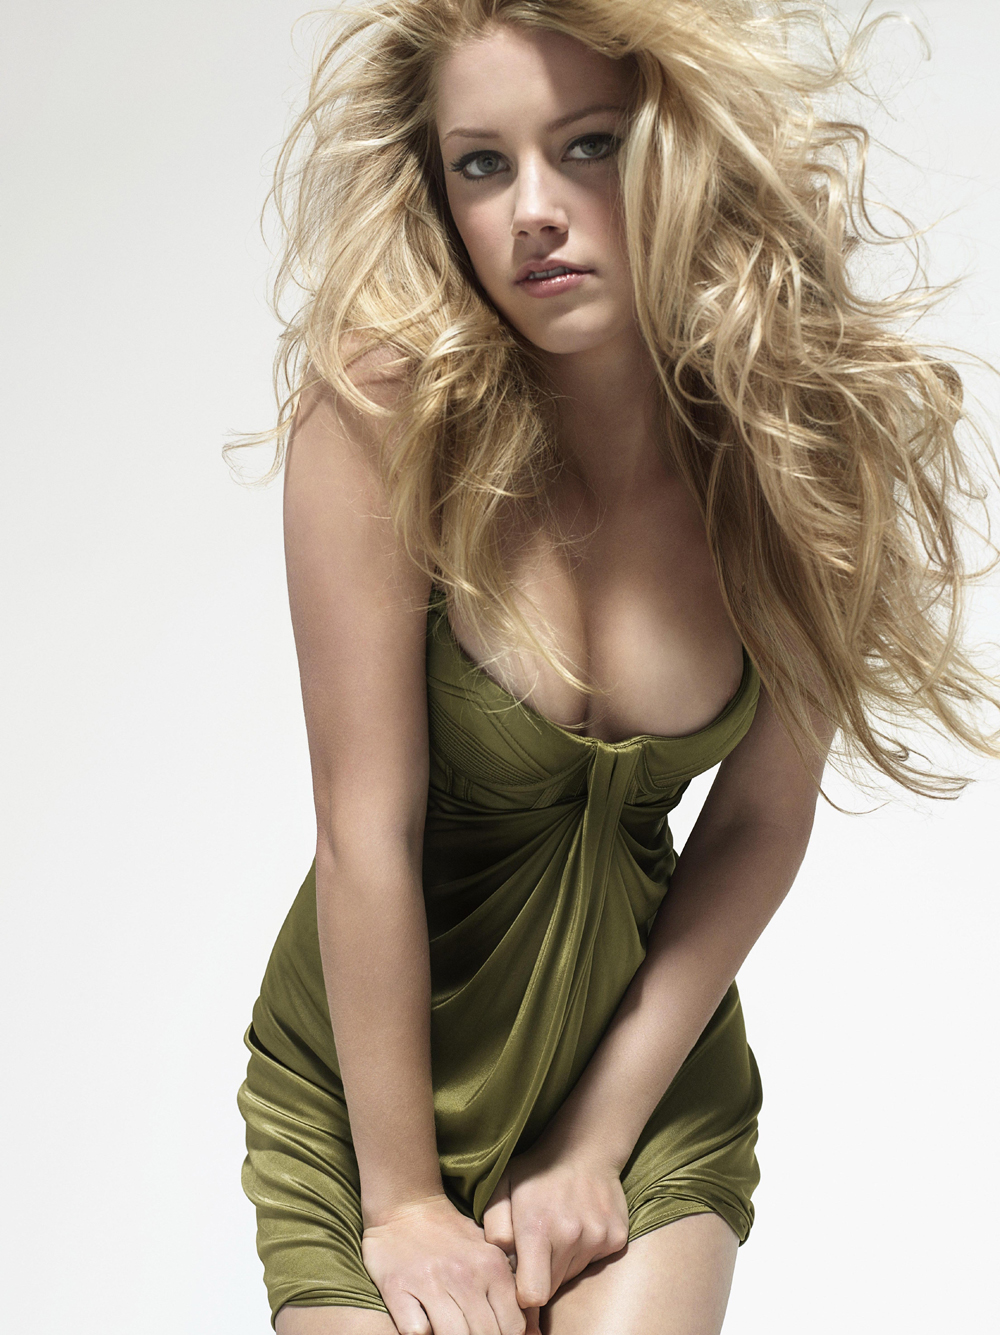 Celebrities, Movies and Games: Amber Heard Movies Amber Heard Movies